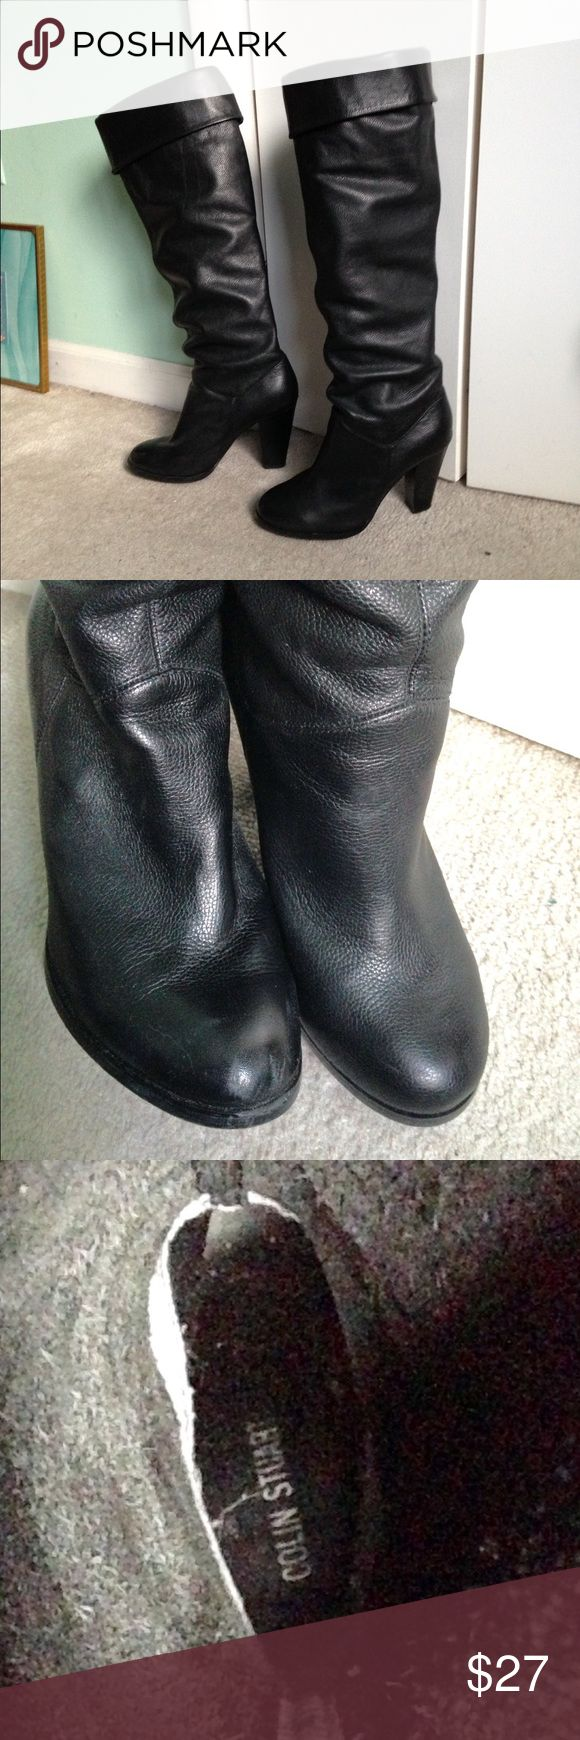 "Colin Stuart Tall Boots 9 Colin Stuart tall black leather pirate fold-over knee boots, beautiful quality leather. Heels 4"" high, no damage, EUC. I wore once to NYE party. One tiny scuff on right toe. Measure 20"" from floor to top. Size 9, true to size. Colin Stuart Shoes Heeled Boots"